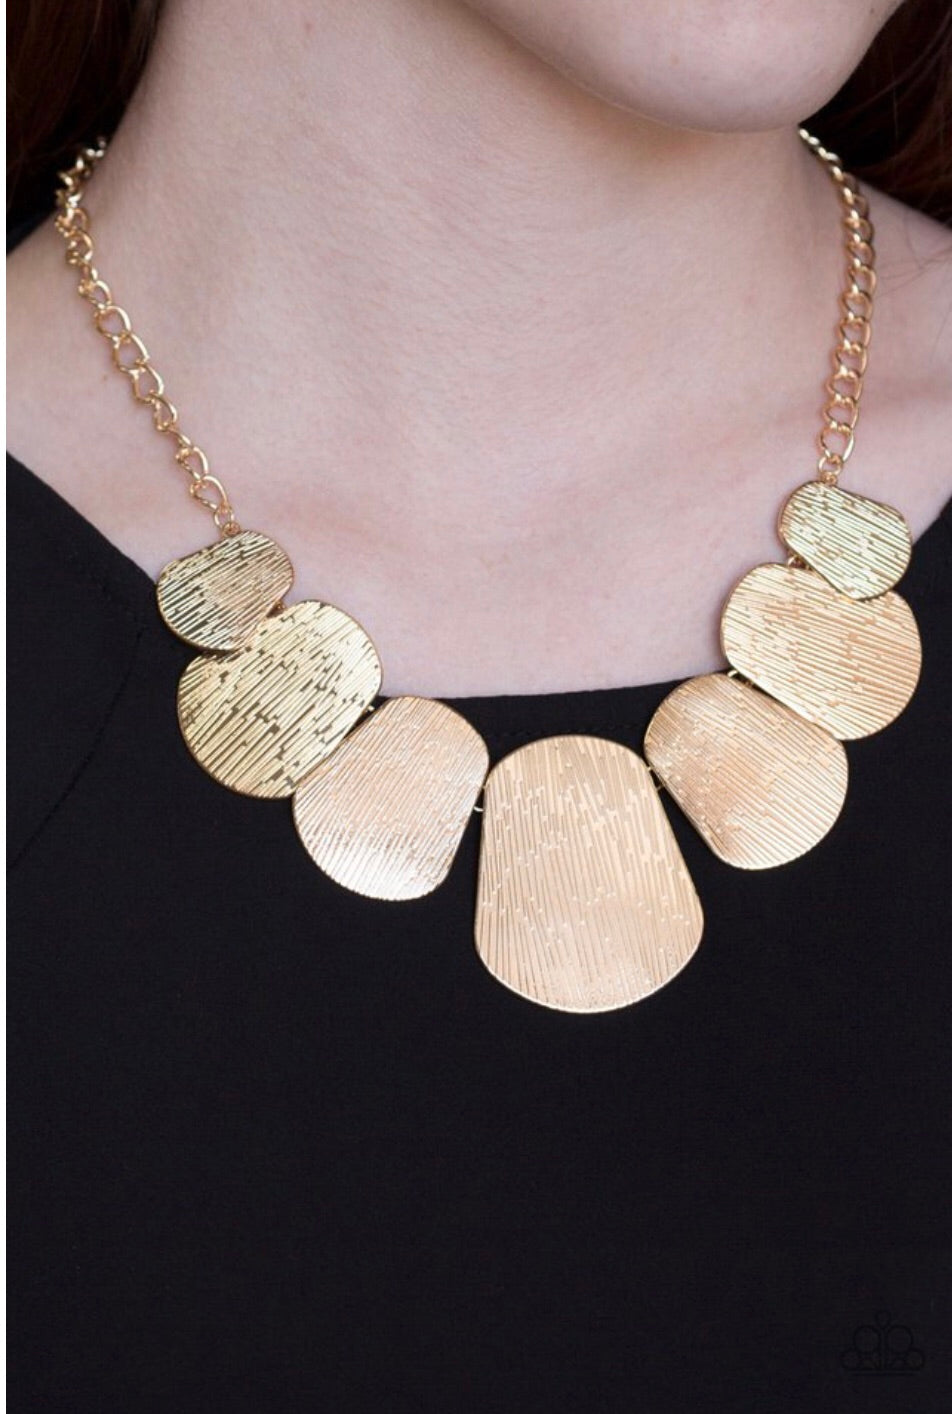 Paparazzi Jewelry Necklace  CAVE The Day - Gold